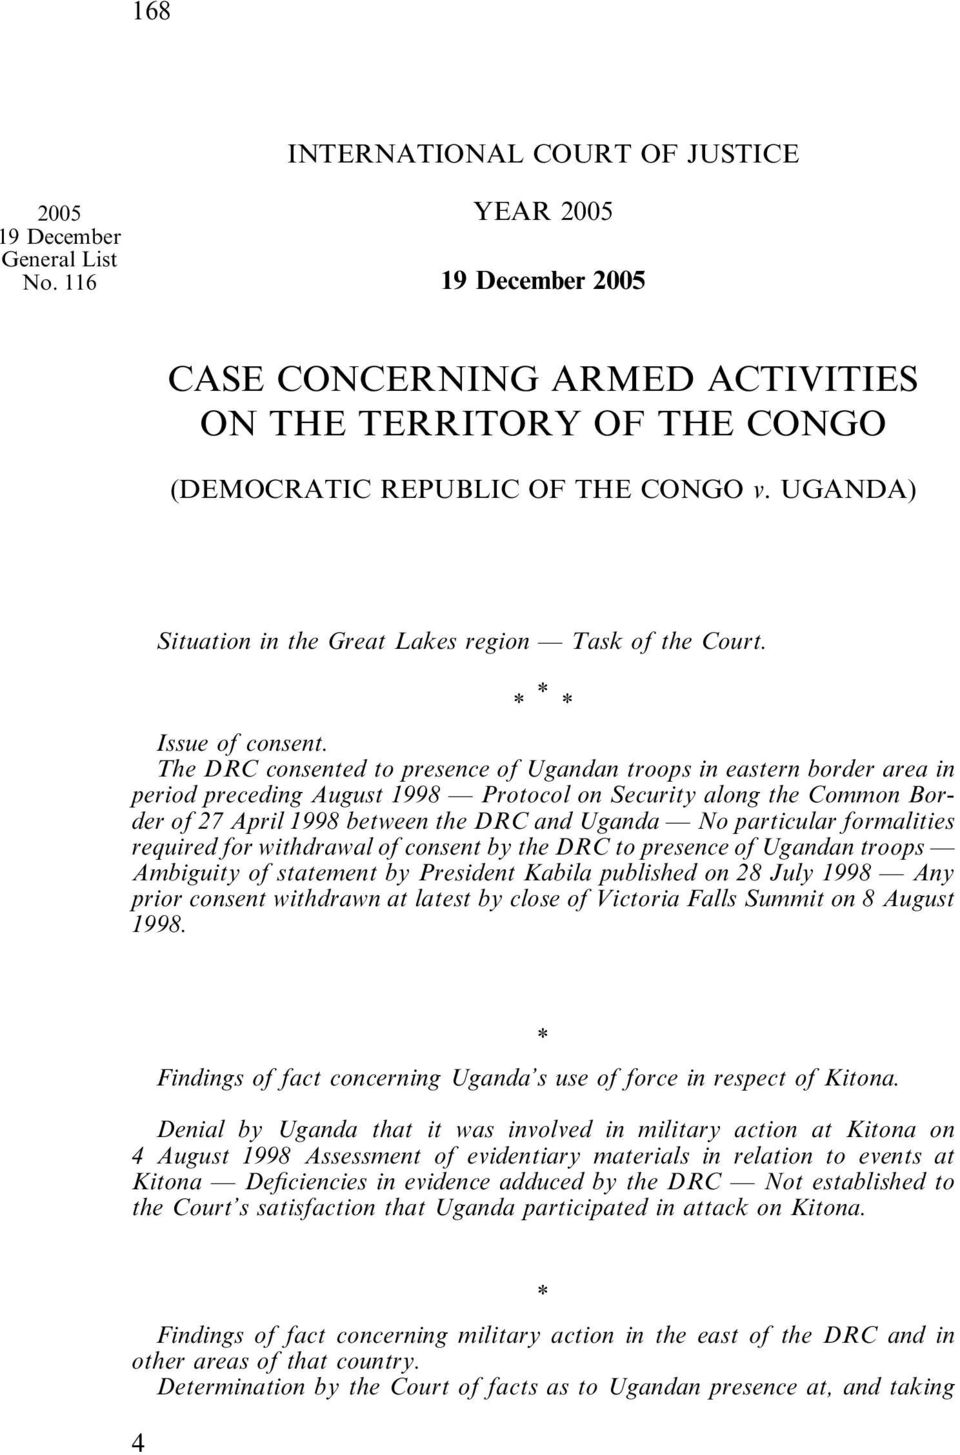 The DRC consented to presence of Ugandan troops in eastern border area in period preceding August 1998 Protocol on Security along the Common Border of 27 April 1998 between the DRC and Uganda No